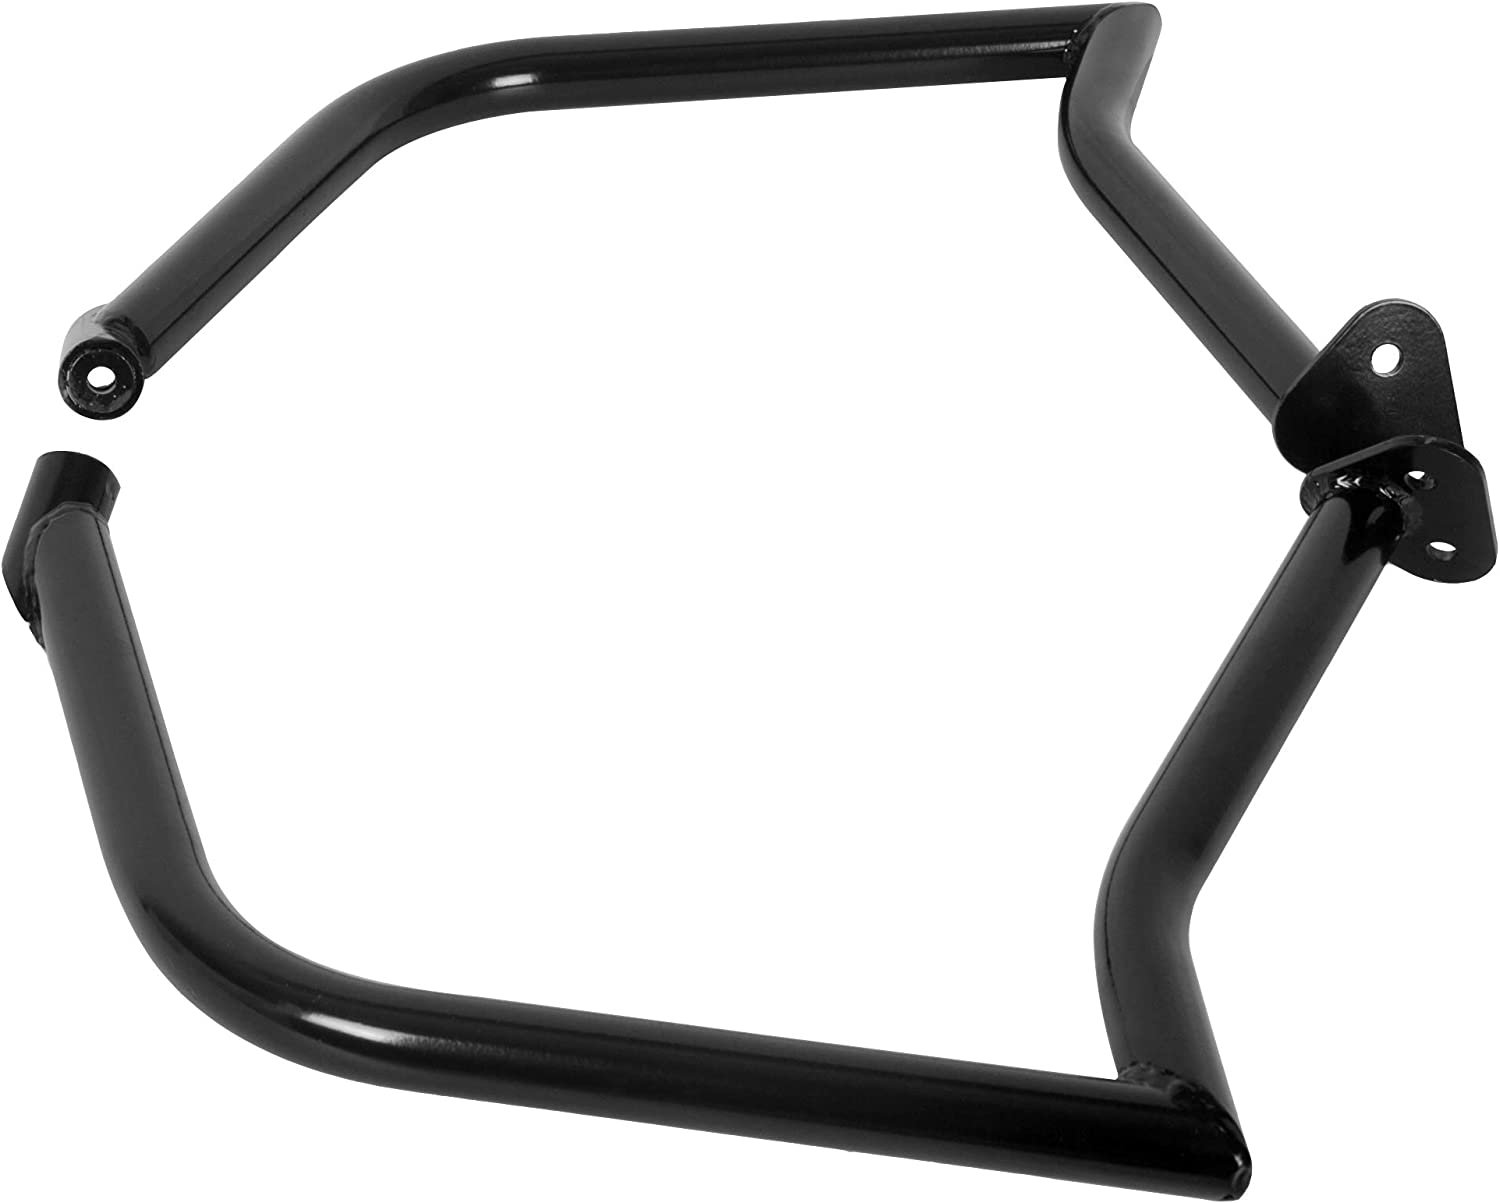 KUAFU Engine Guard Highway Crash Bar Compatible With 2010-2017 Victory Cross Country Tour Cross Roads Magnum Black